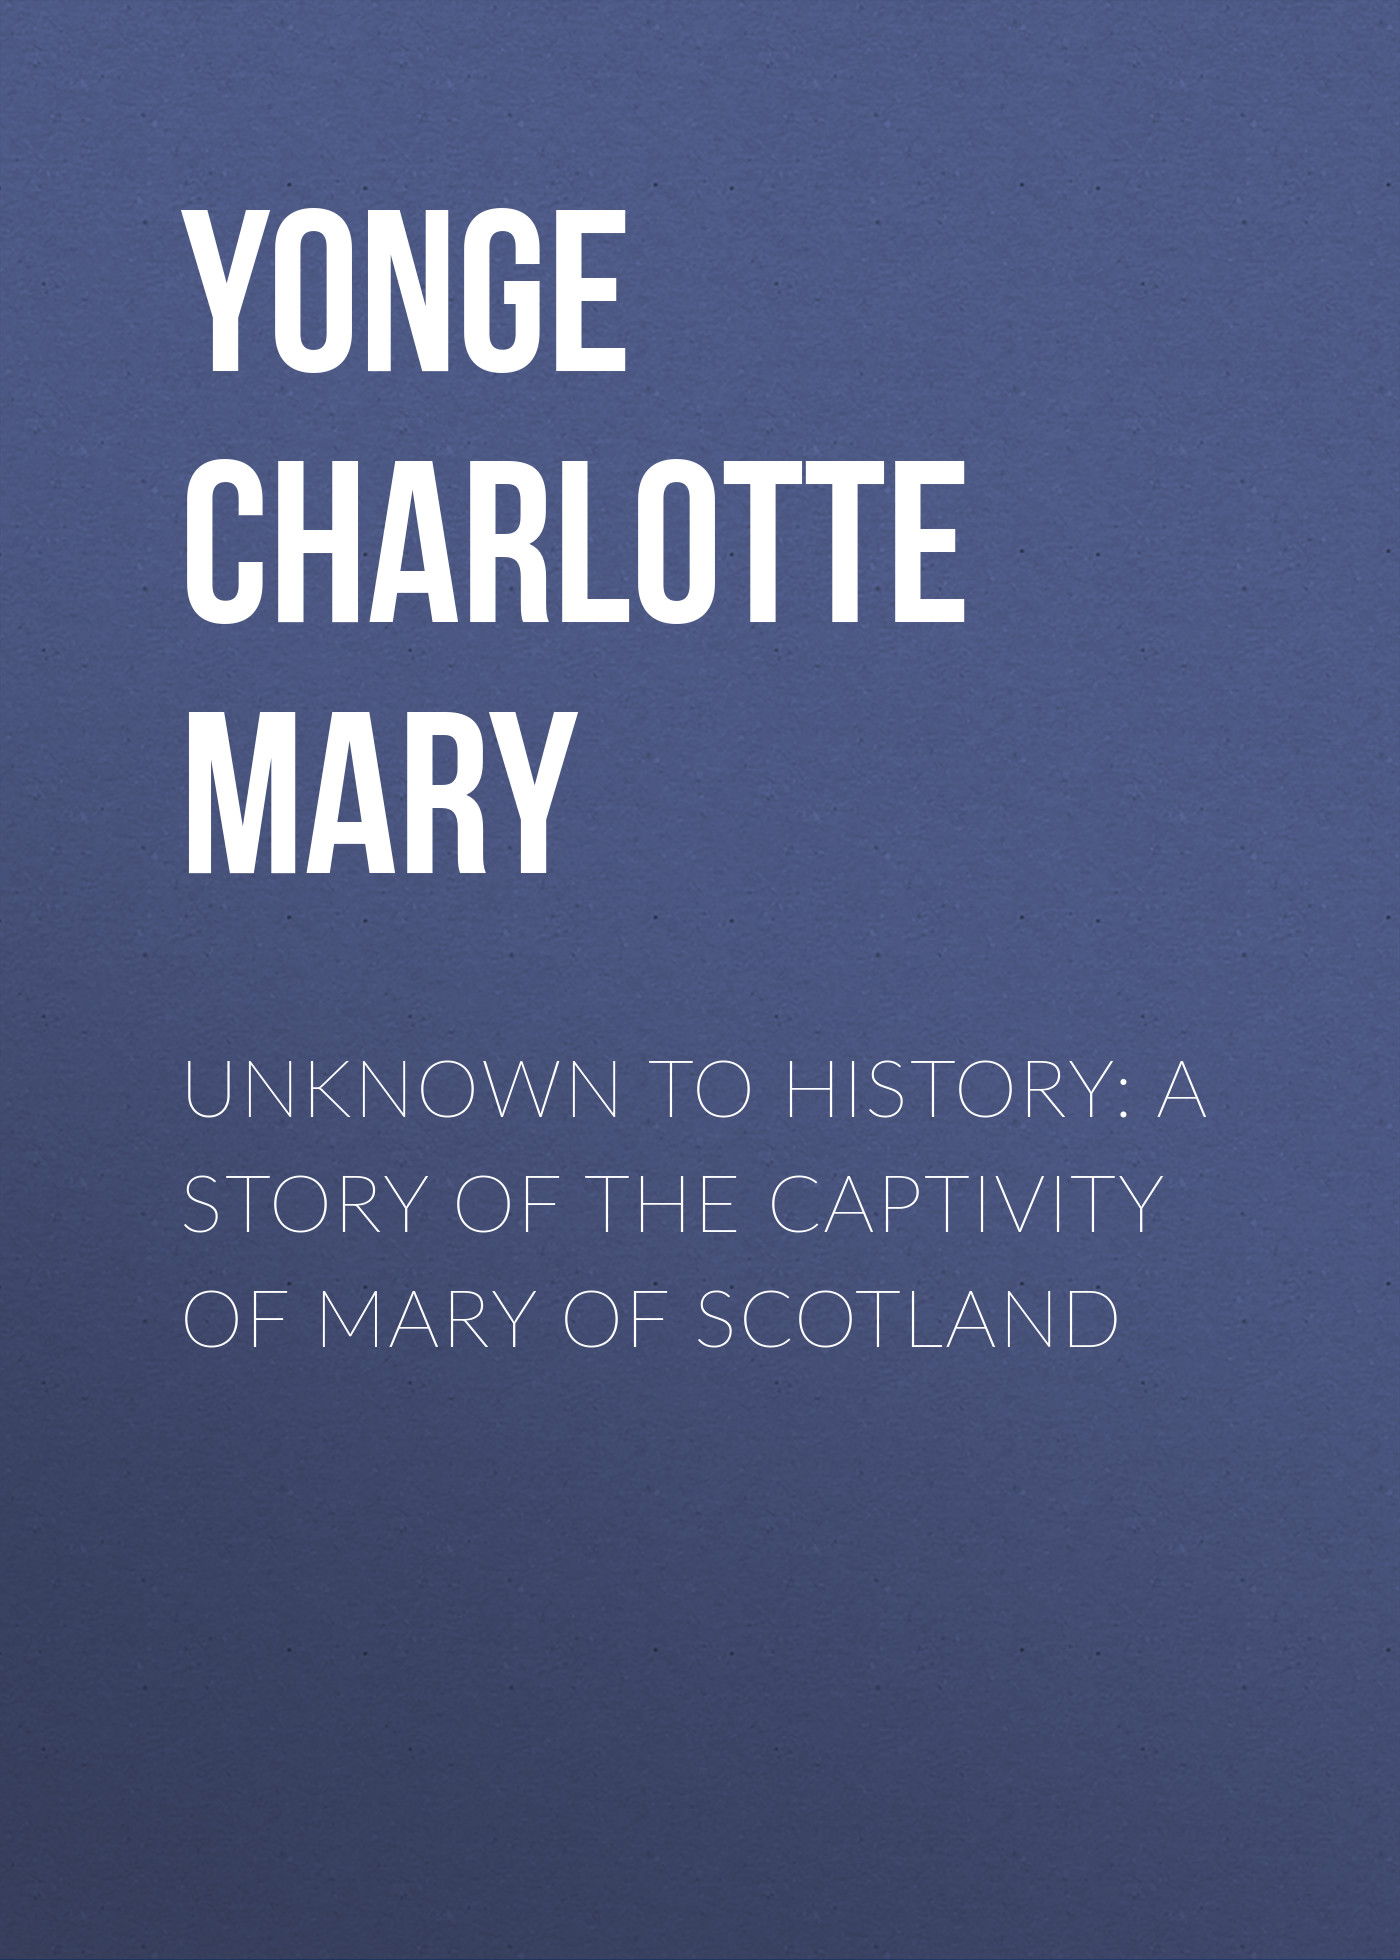 Yonge Charlotte Mary Unknown to History: A Story of the Captivity of Mary of Scotland mary burbidge forever baby jenny's story a mother's diary